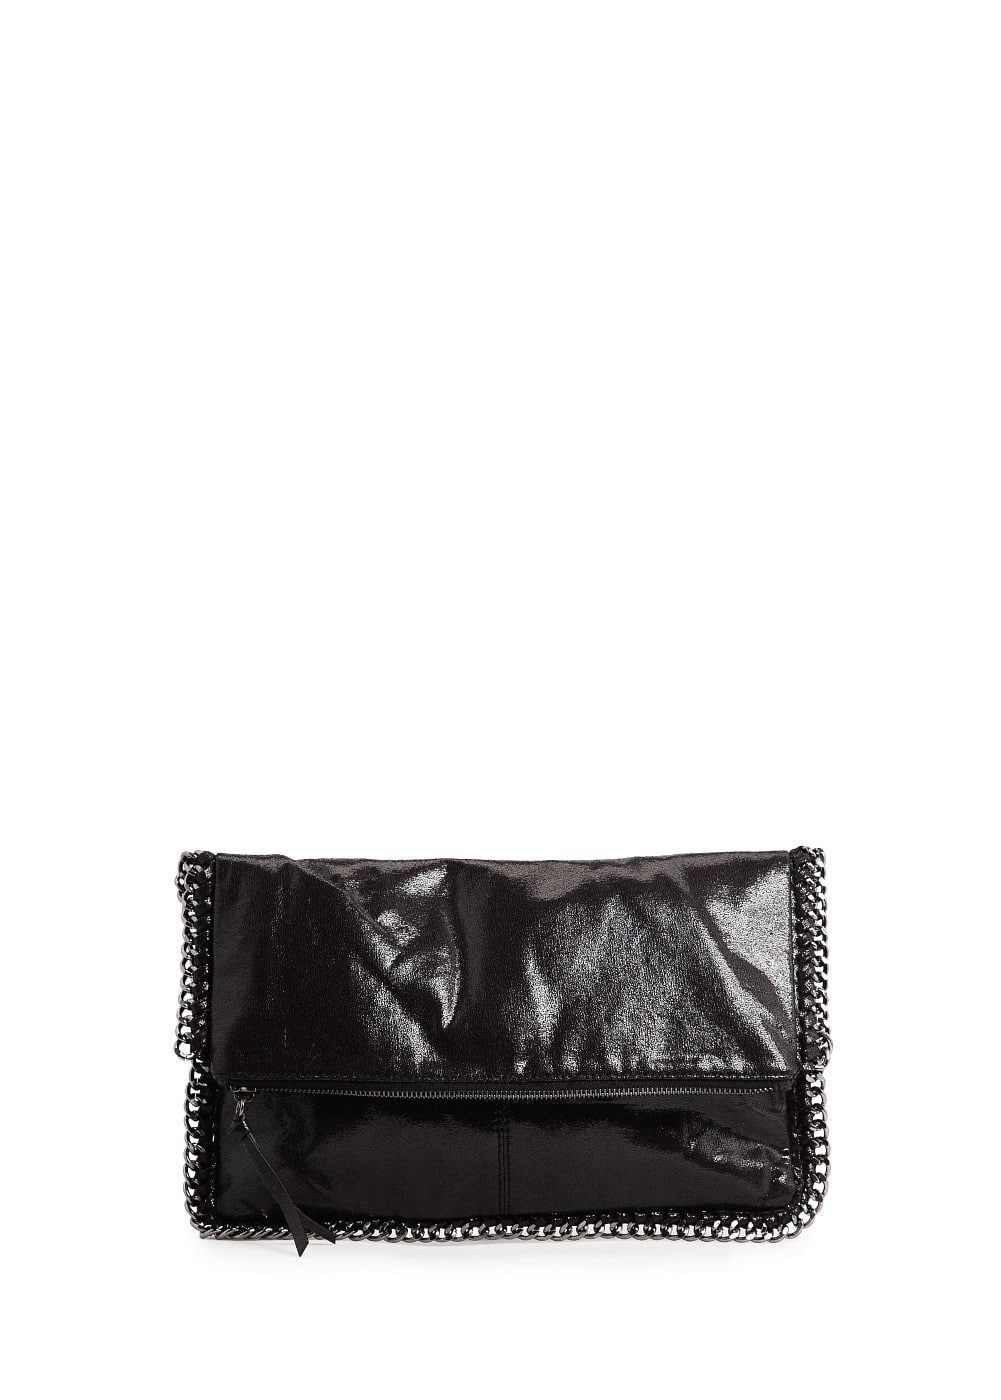 CHAIN METALLIC FOLDED CLUTCH